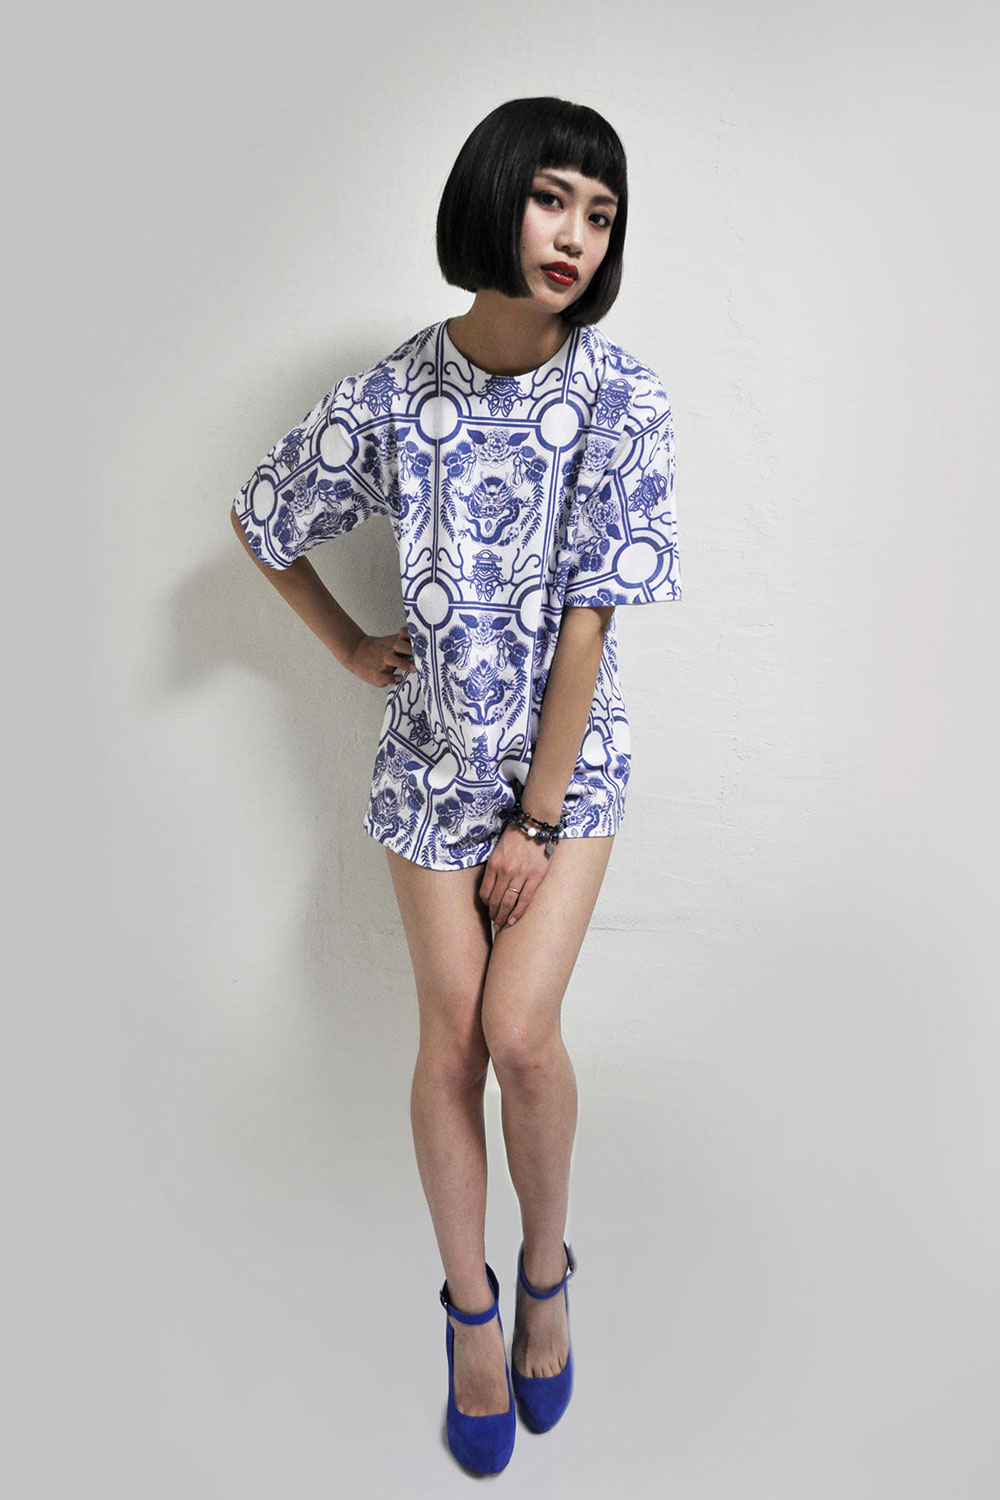 """Japanese Brand Vive Vagina's """"Blue Willow"""" Debut Collection"""